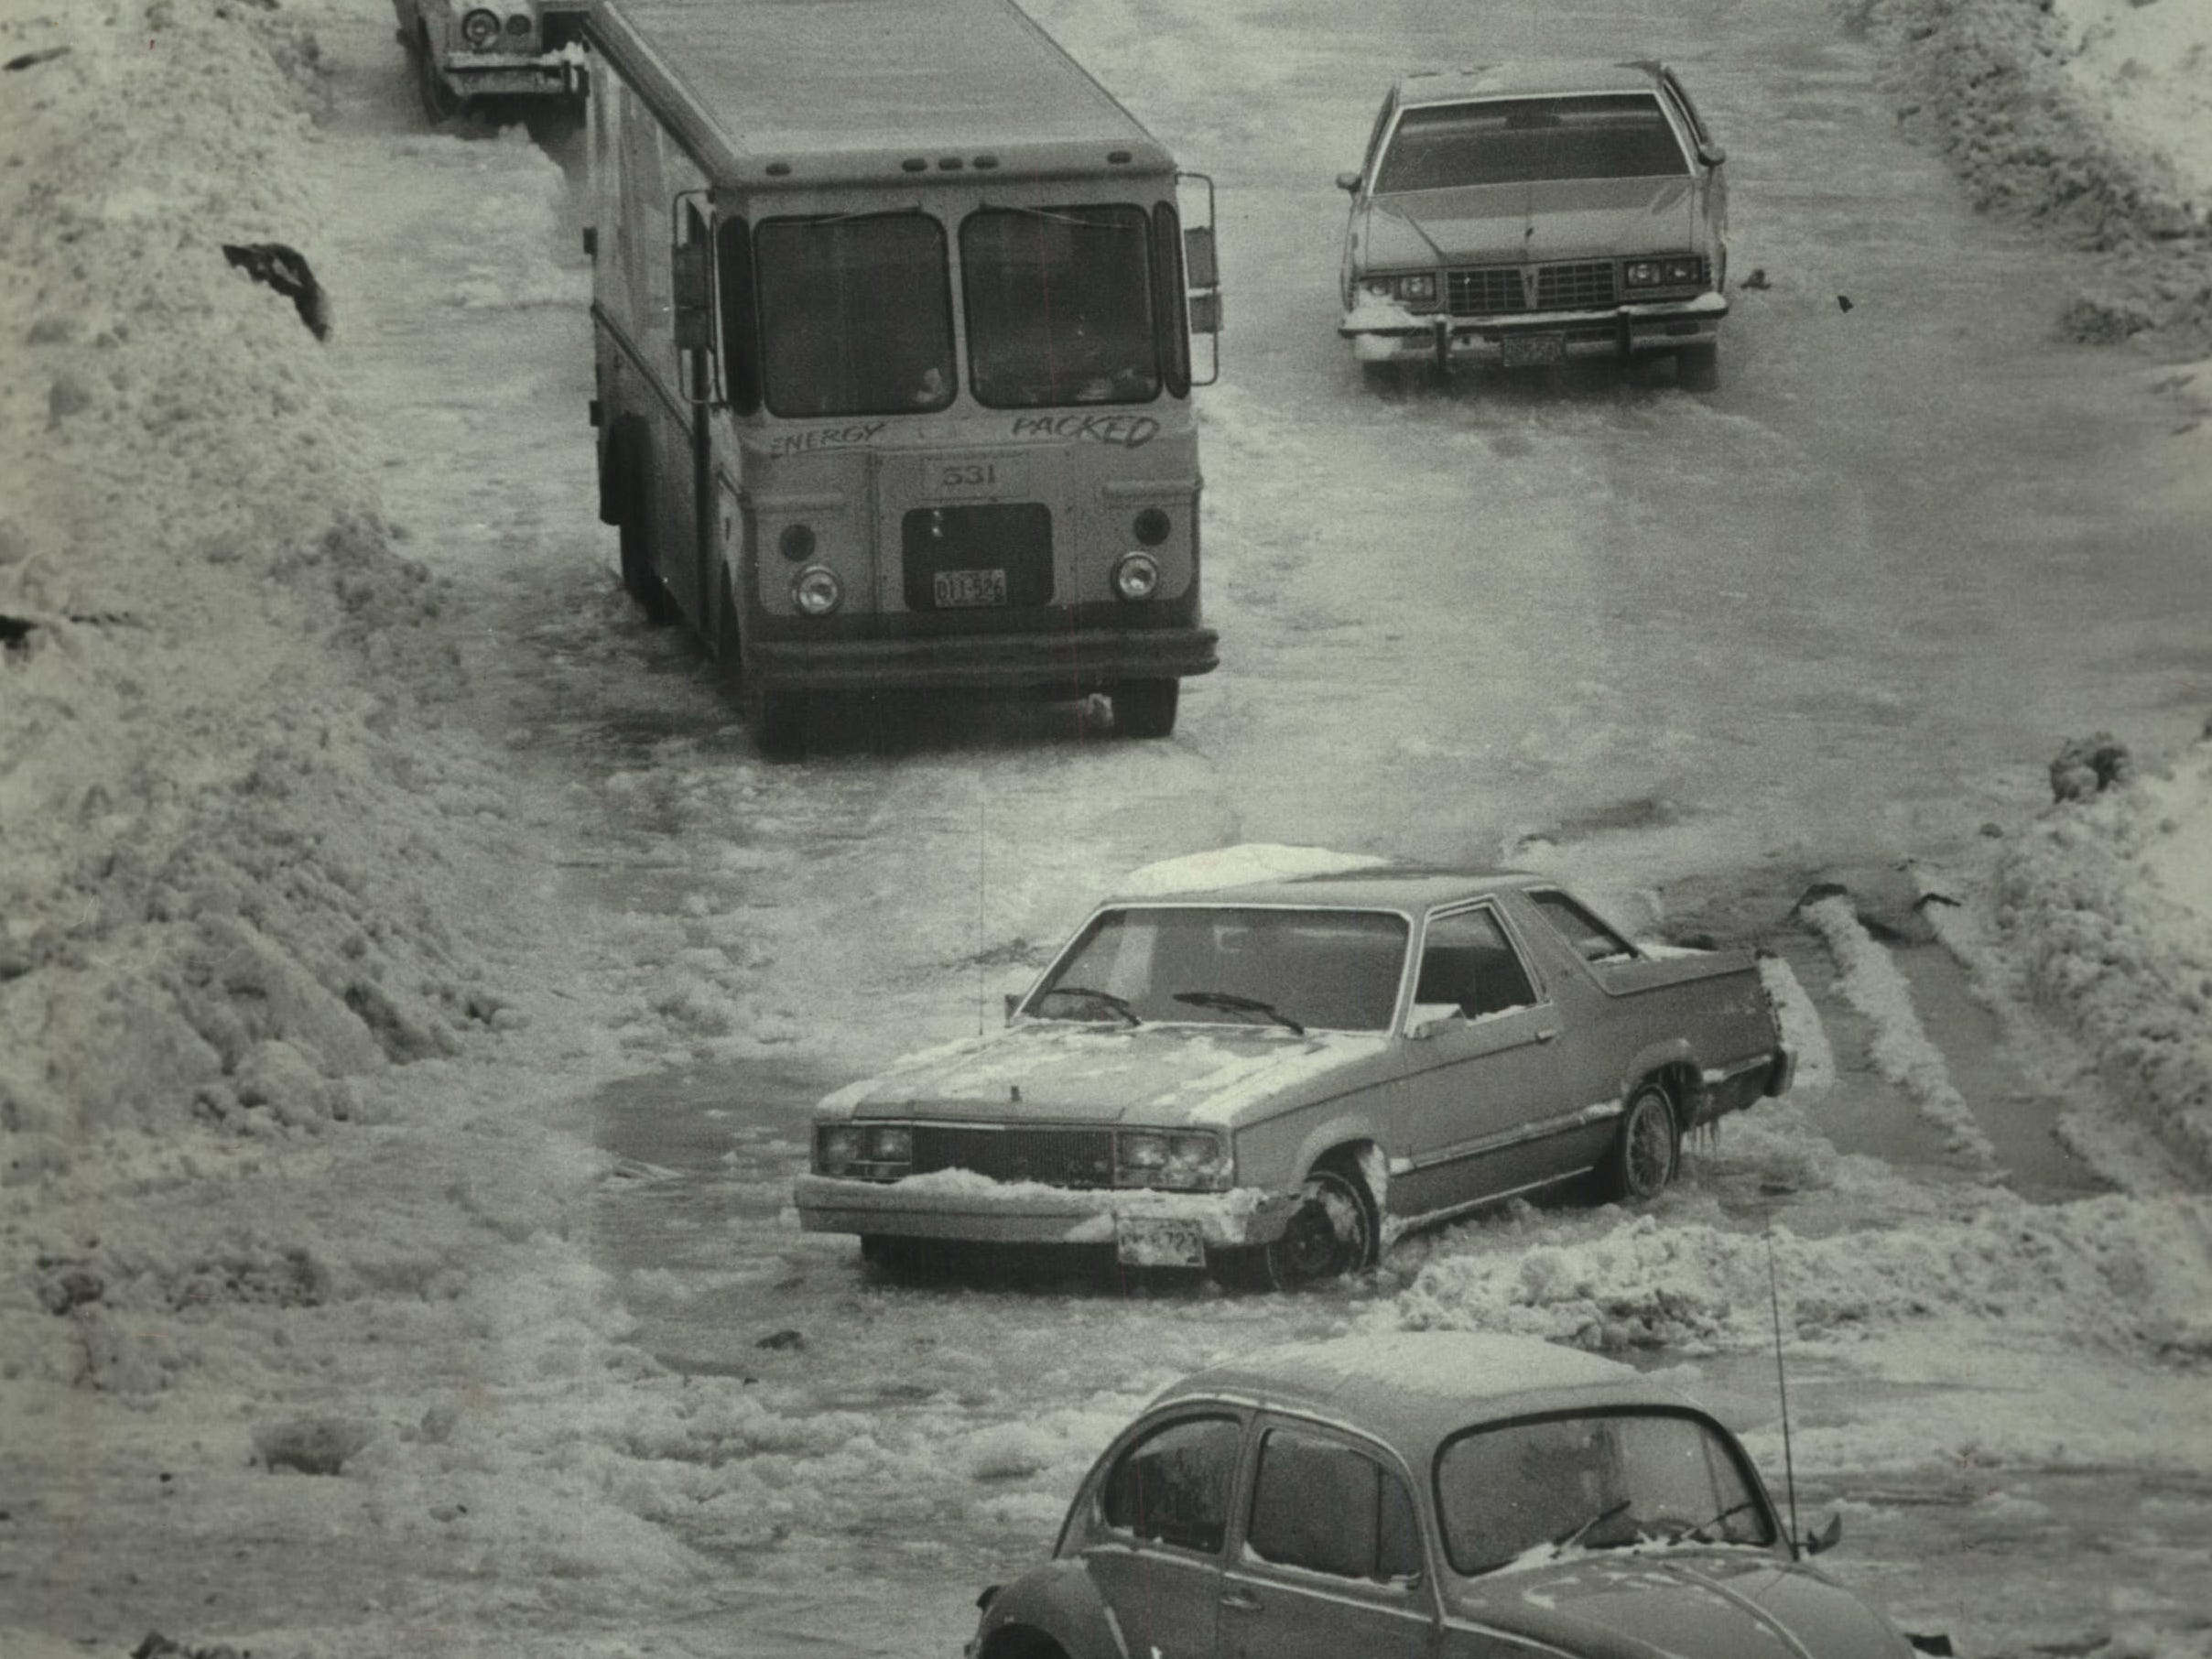 A ruptured water line added misery, and ice, to a still barely plowed Highland Boulevard near Milwaukee Area Technical College on Jan. 15, 1979. The water, on top of the still-slushy streets, left some vehicles stuck and, later, frozen in place on the street. This photo was published in the Jan. 15, 1979, Milwaukee Journal.